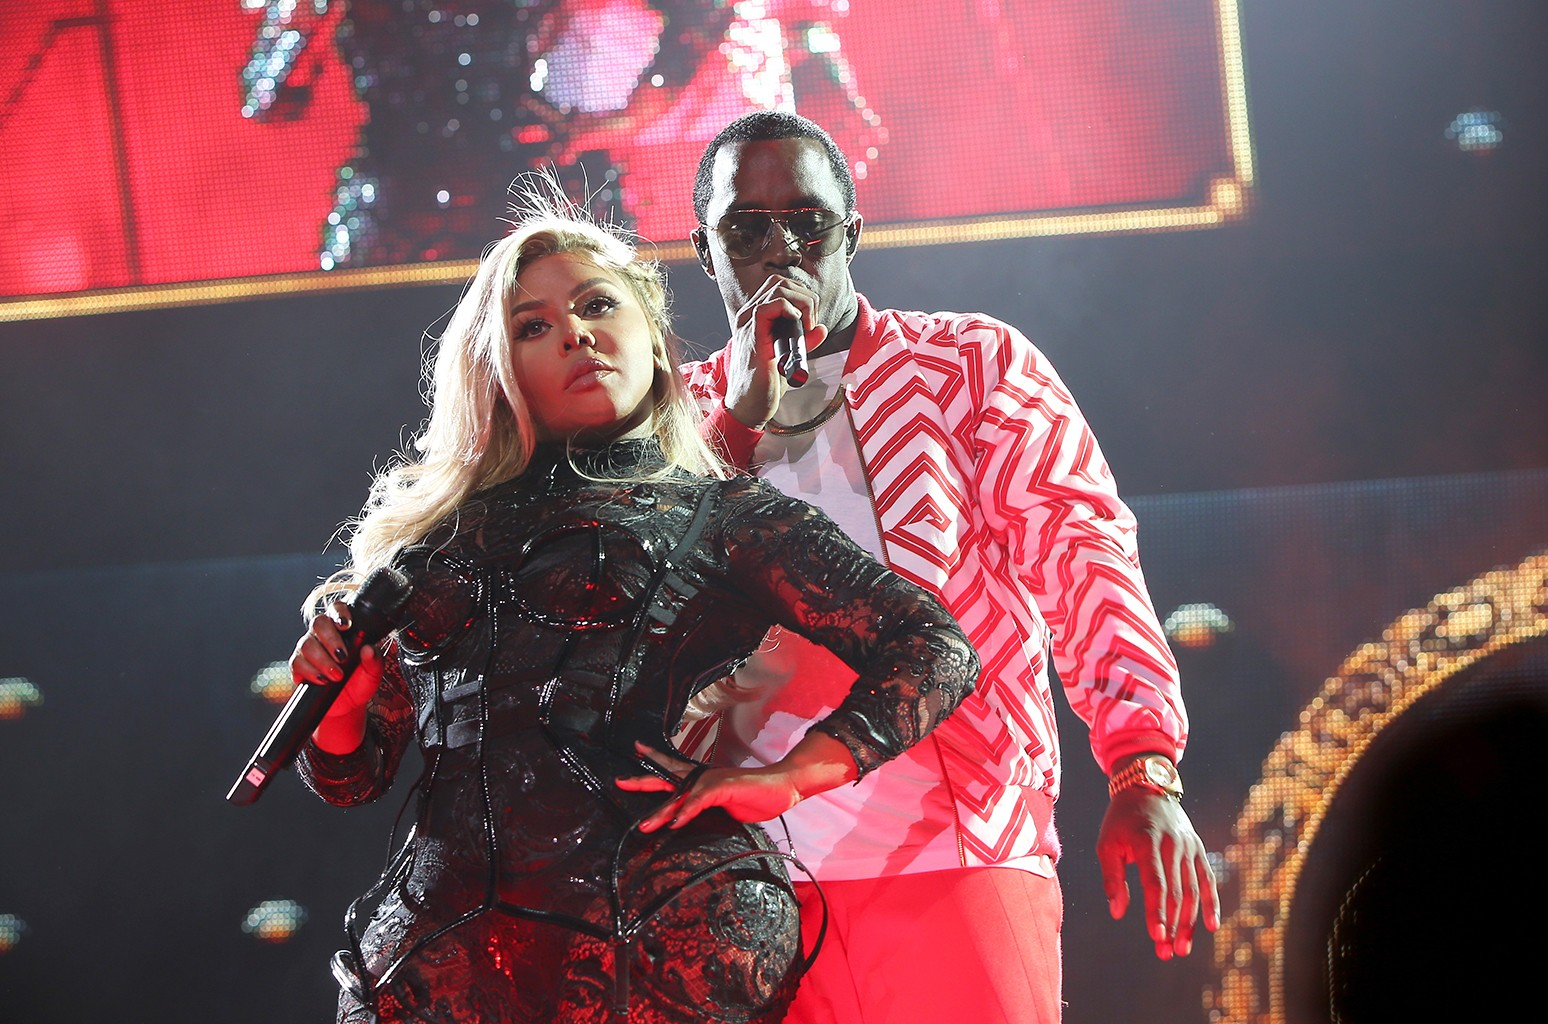 Lil' Kim and Puff Daddy perform during the Bad Boy Family Reunion Tour